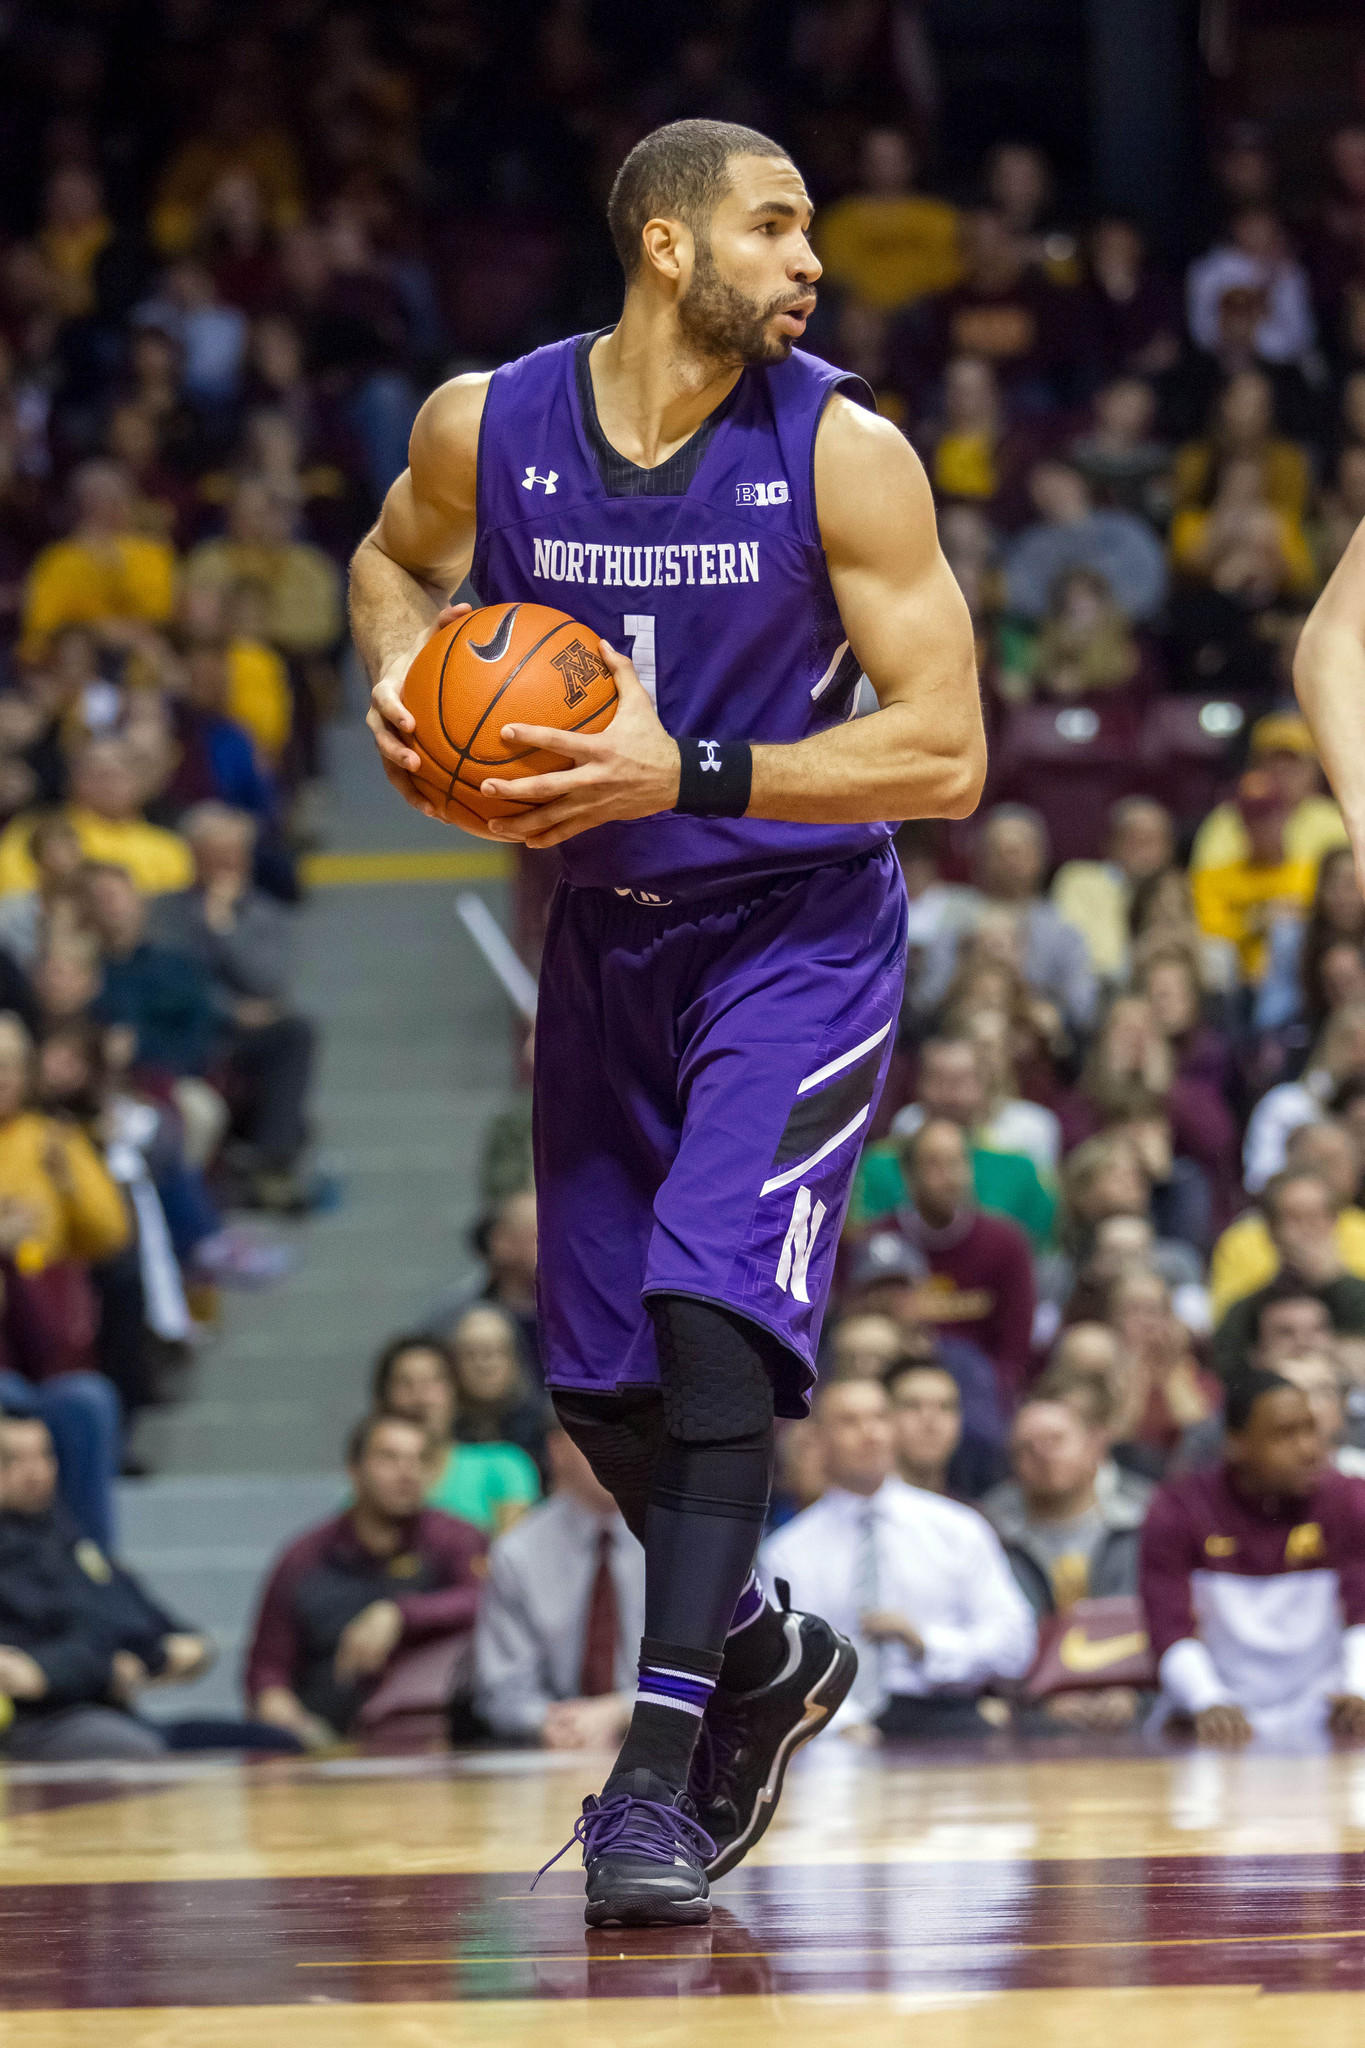 Northwestern's Drew Crawford rebounds in the second half against Minnesota.